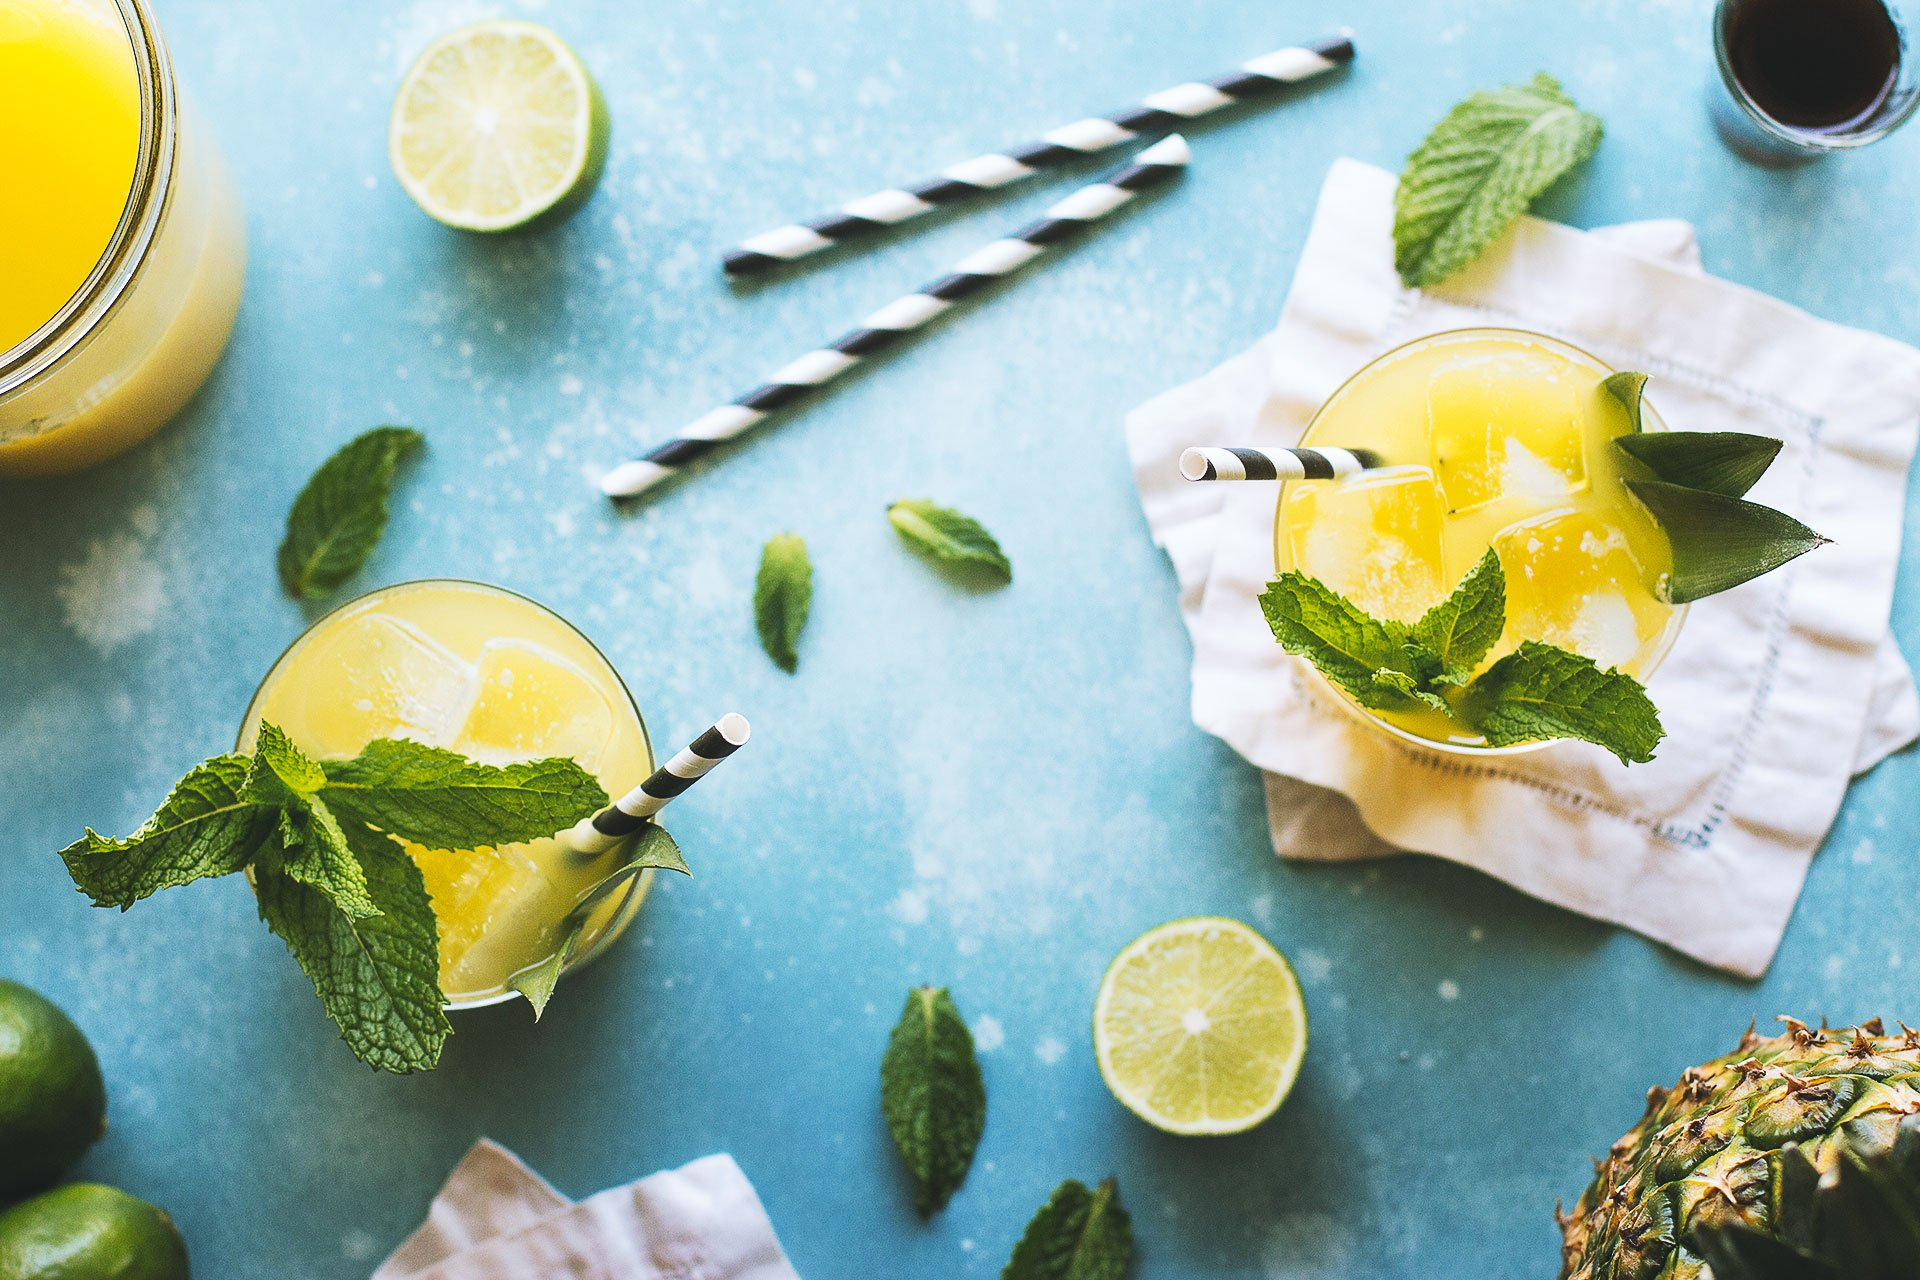 Pineapple Mint Cooler Recipe by HonestlyYUM (honestlyyum.com)